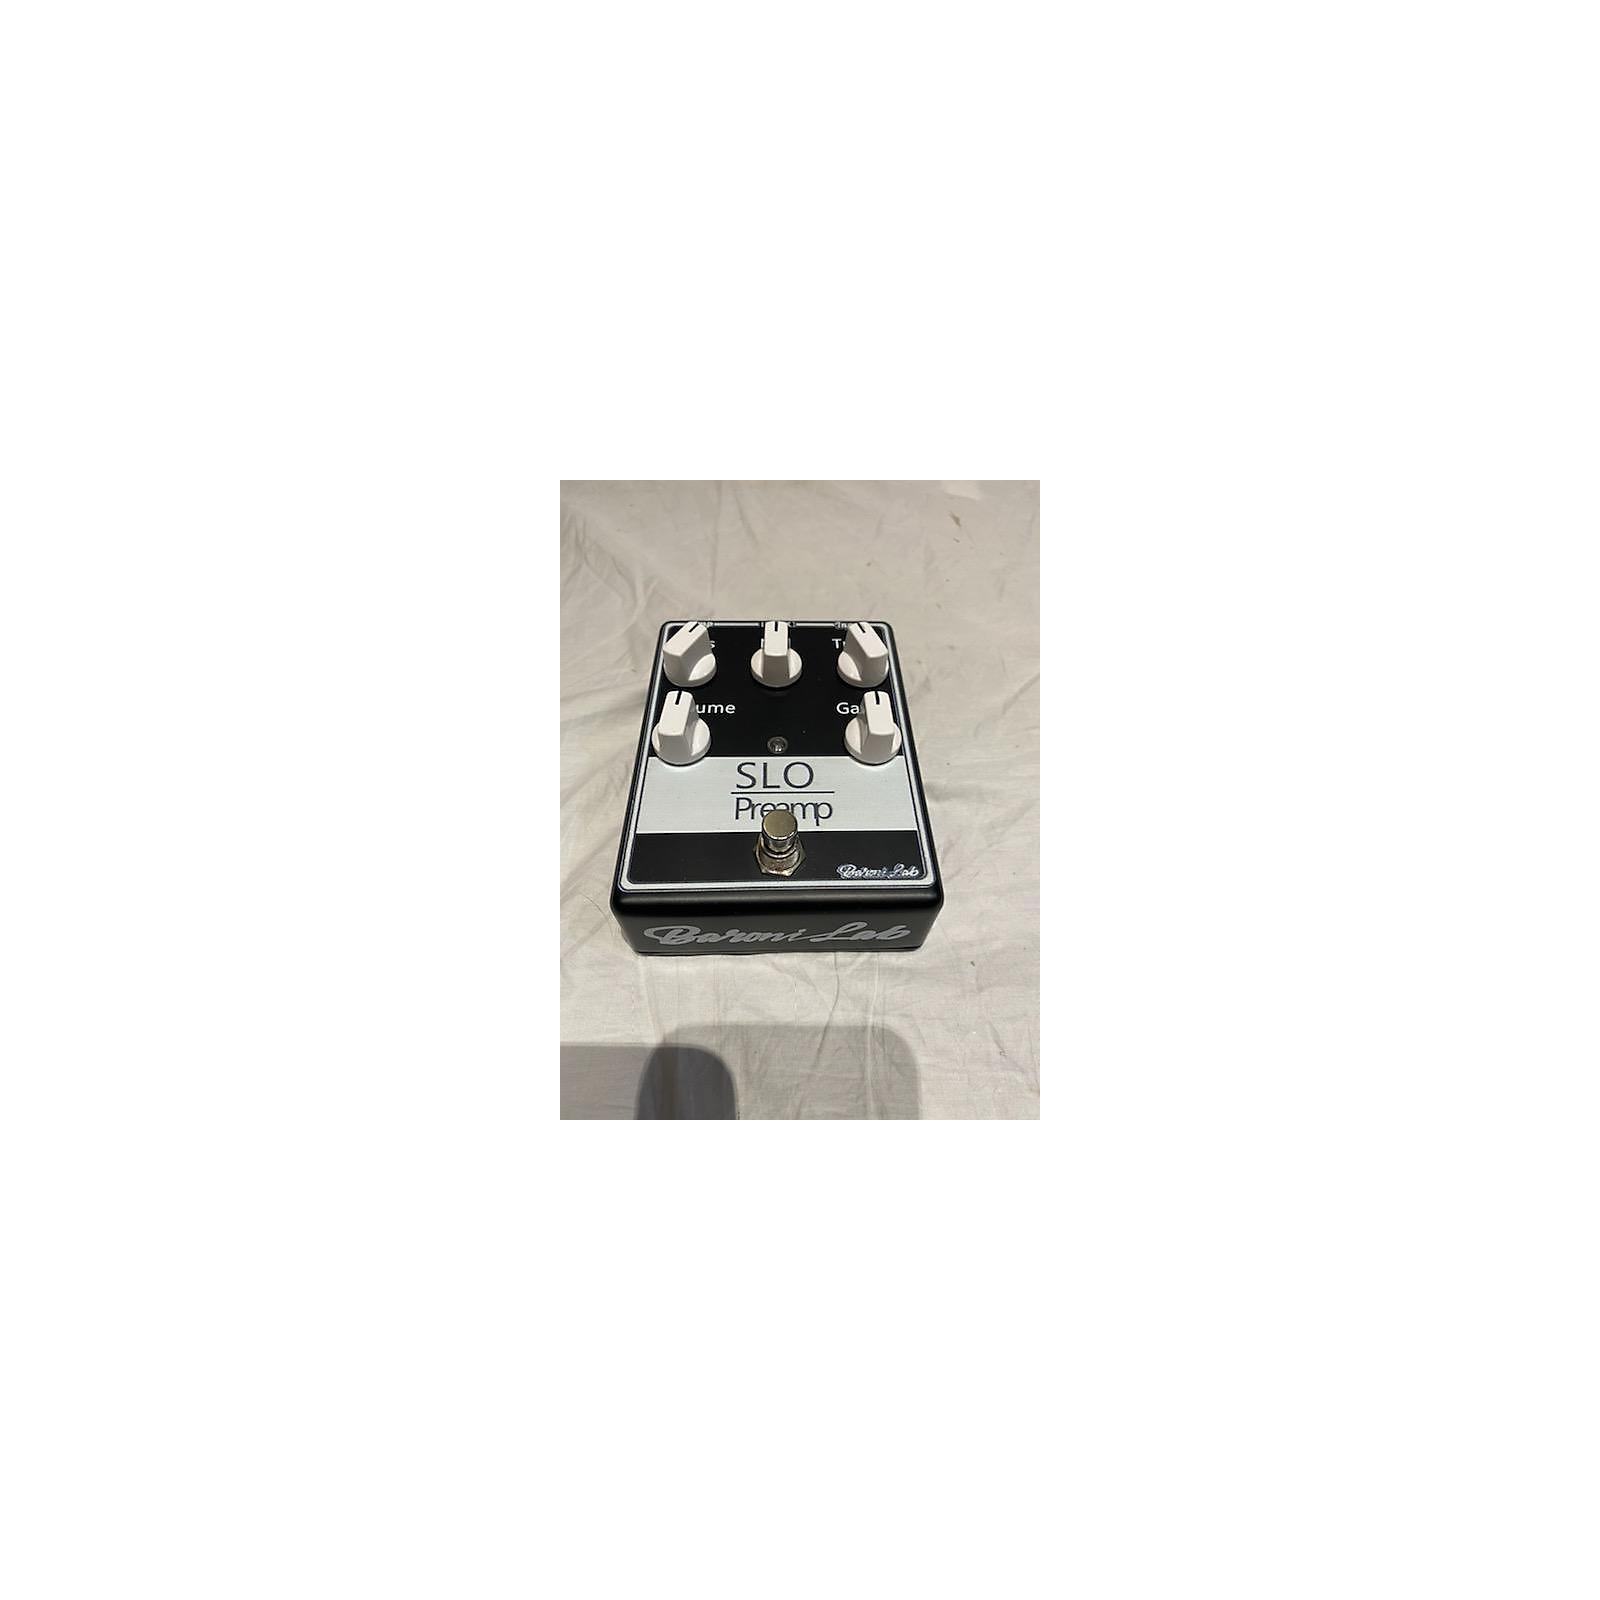 In Store Used Used Baroni Labs Slo Preamp Effect Pedal